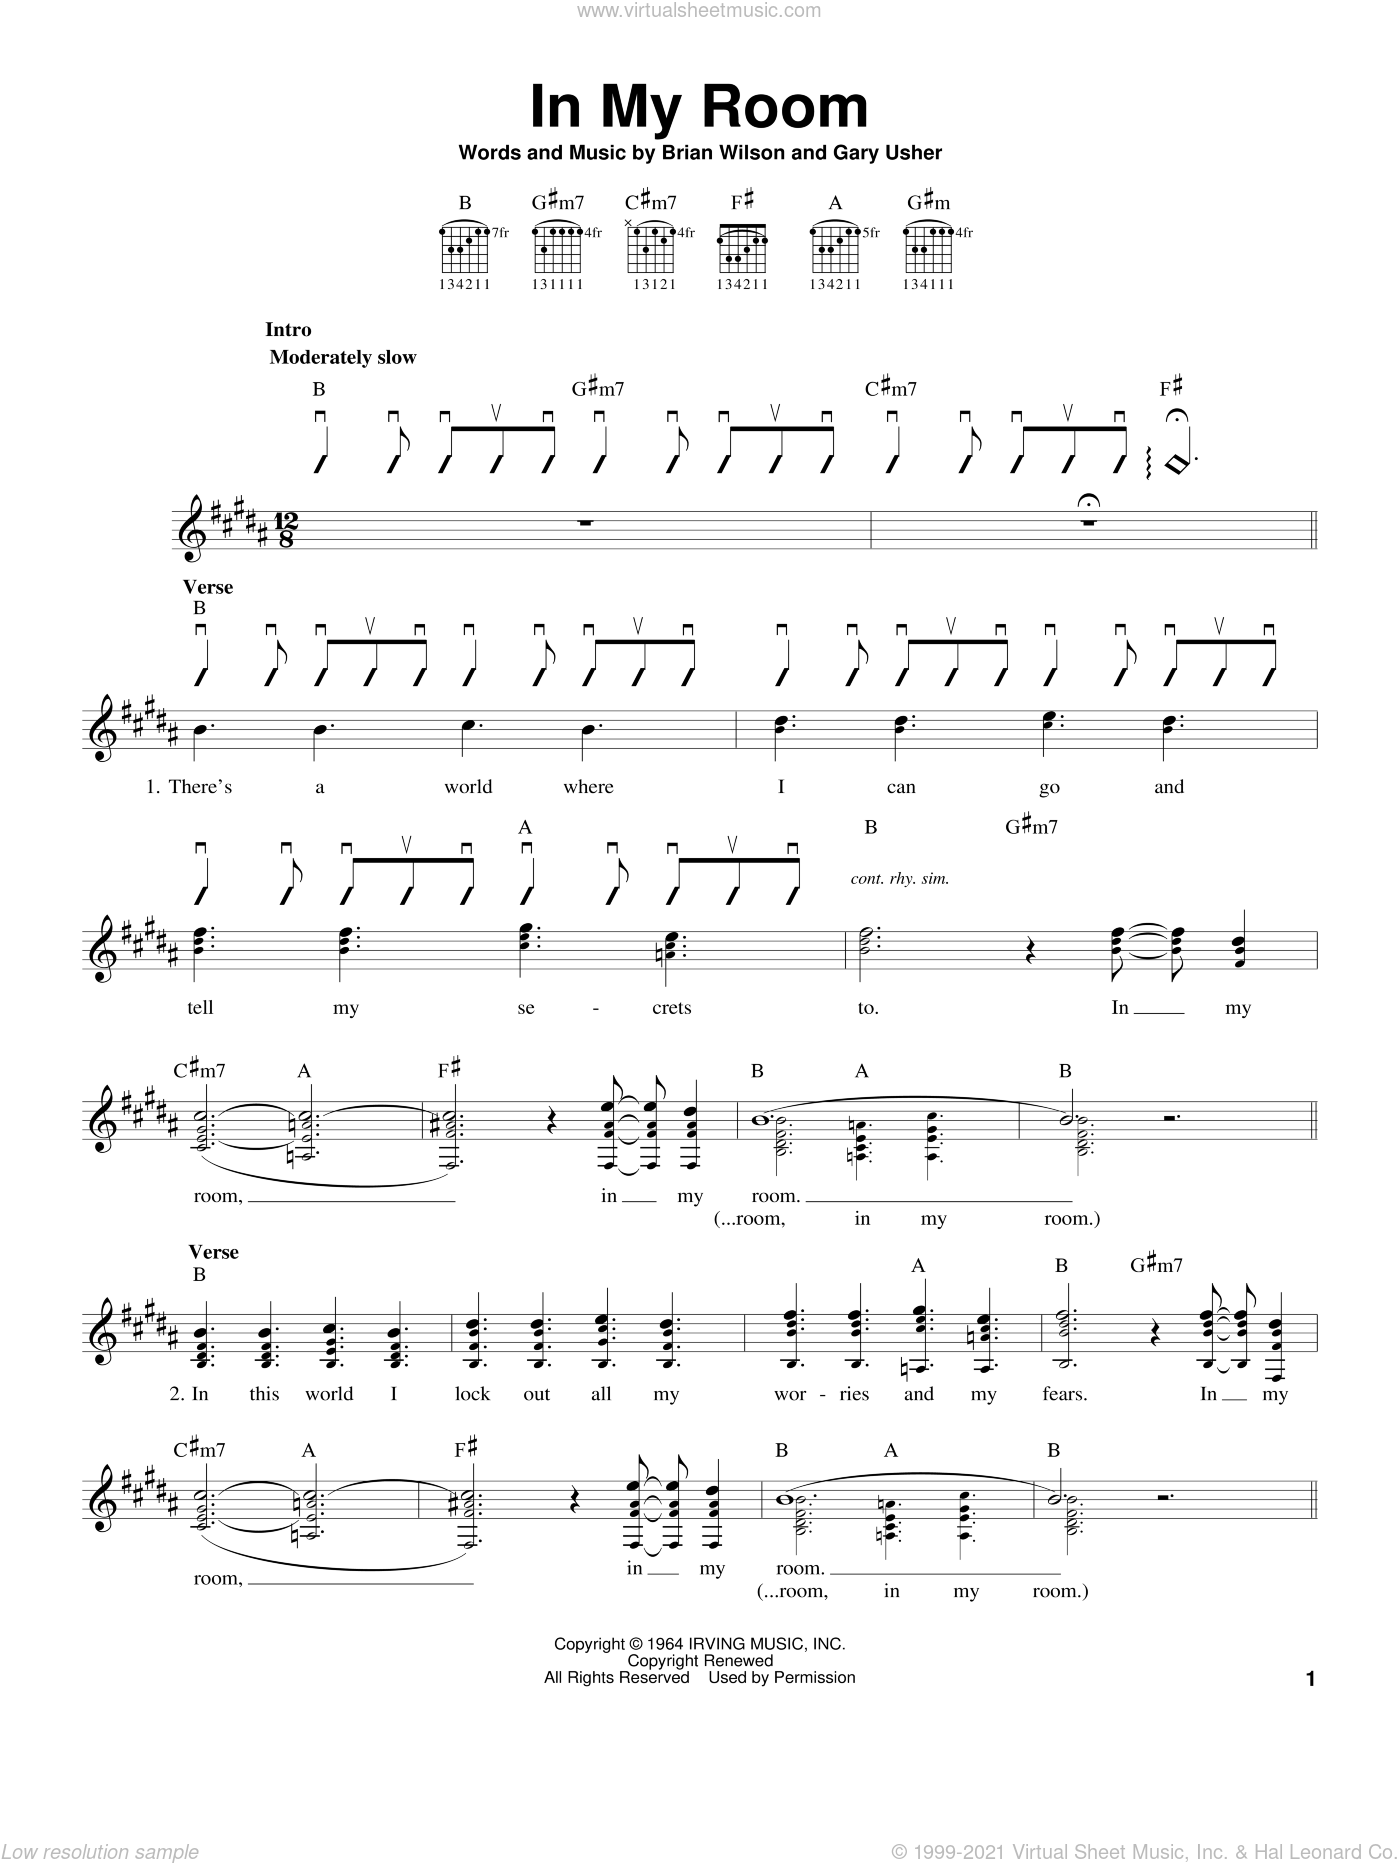 In My Room sheet music for guitar solo (chords) by The Beach Boys, Brian Wilson and Gary Usher, easy guitar (chords)